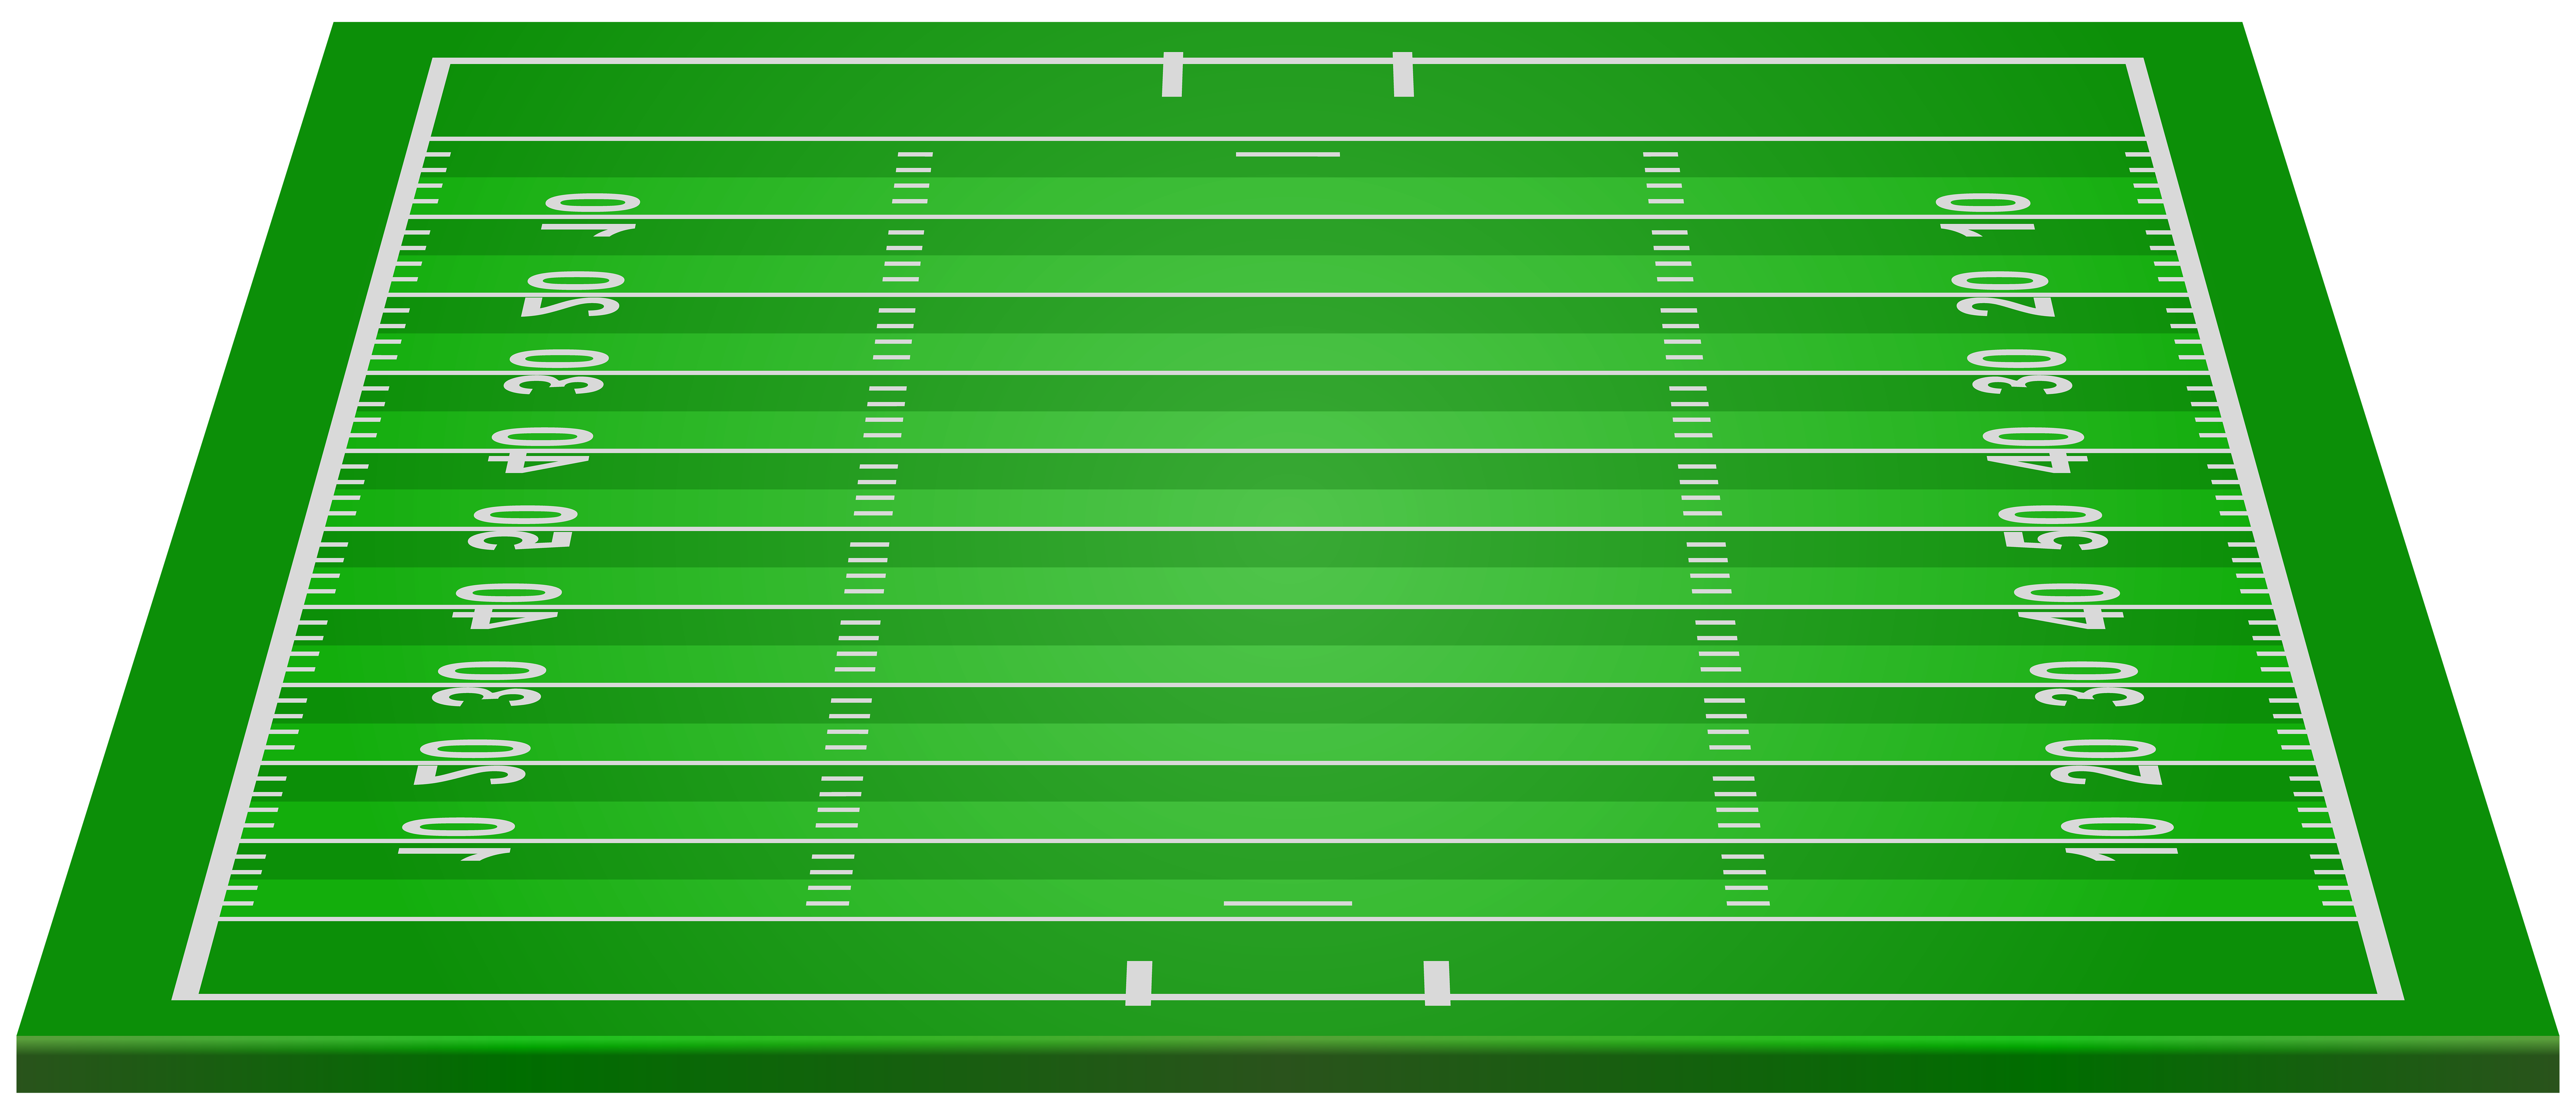 American Football Field Png Football Pitch Football Field American Football